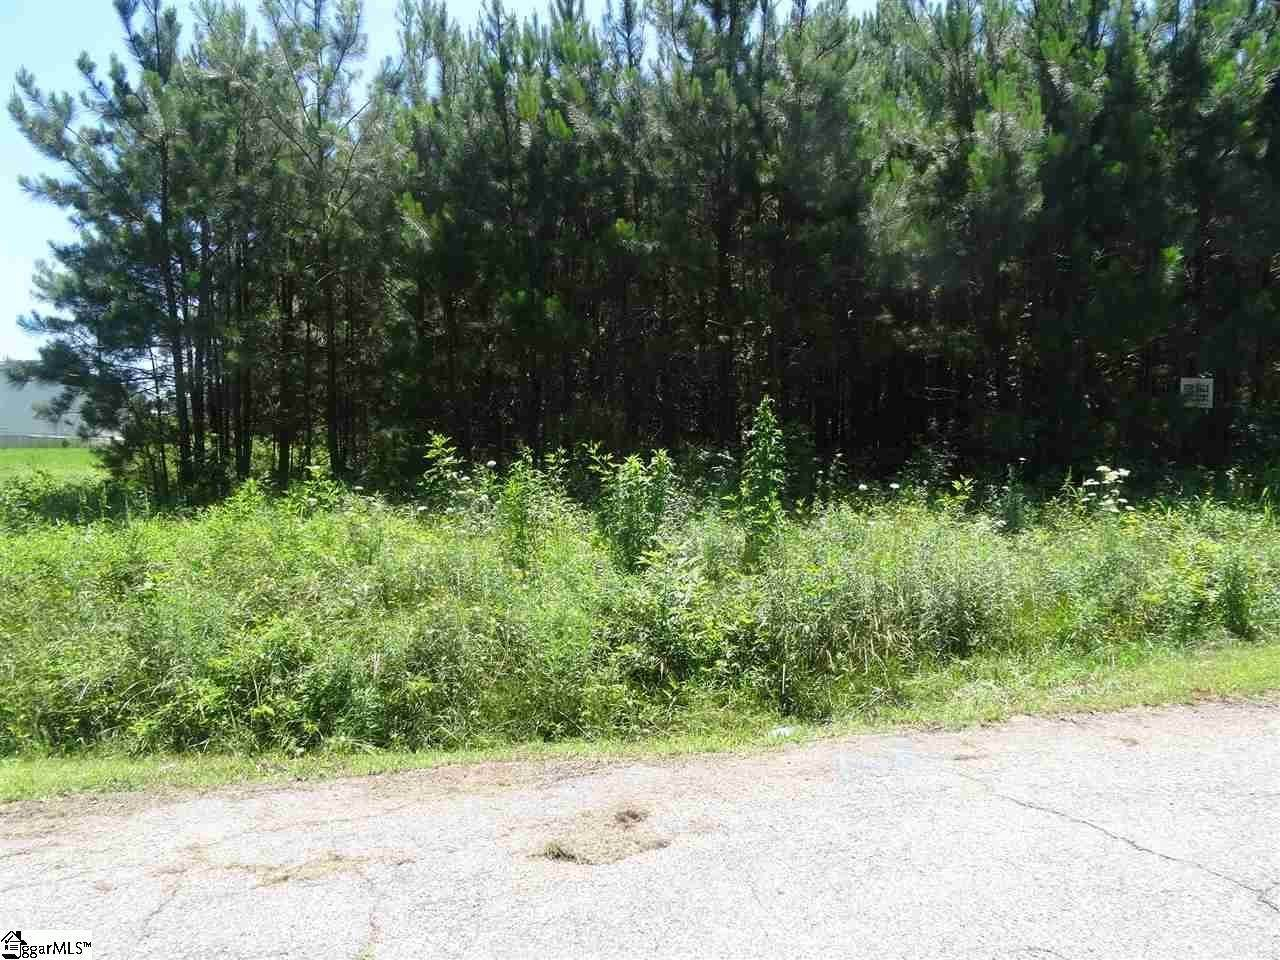 Residential Lot for Sale at Townville, SC 29689